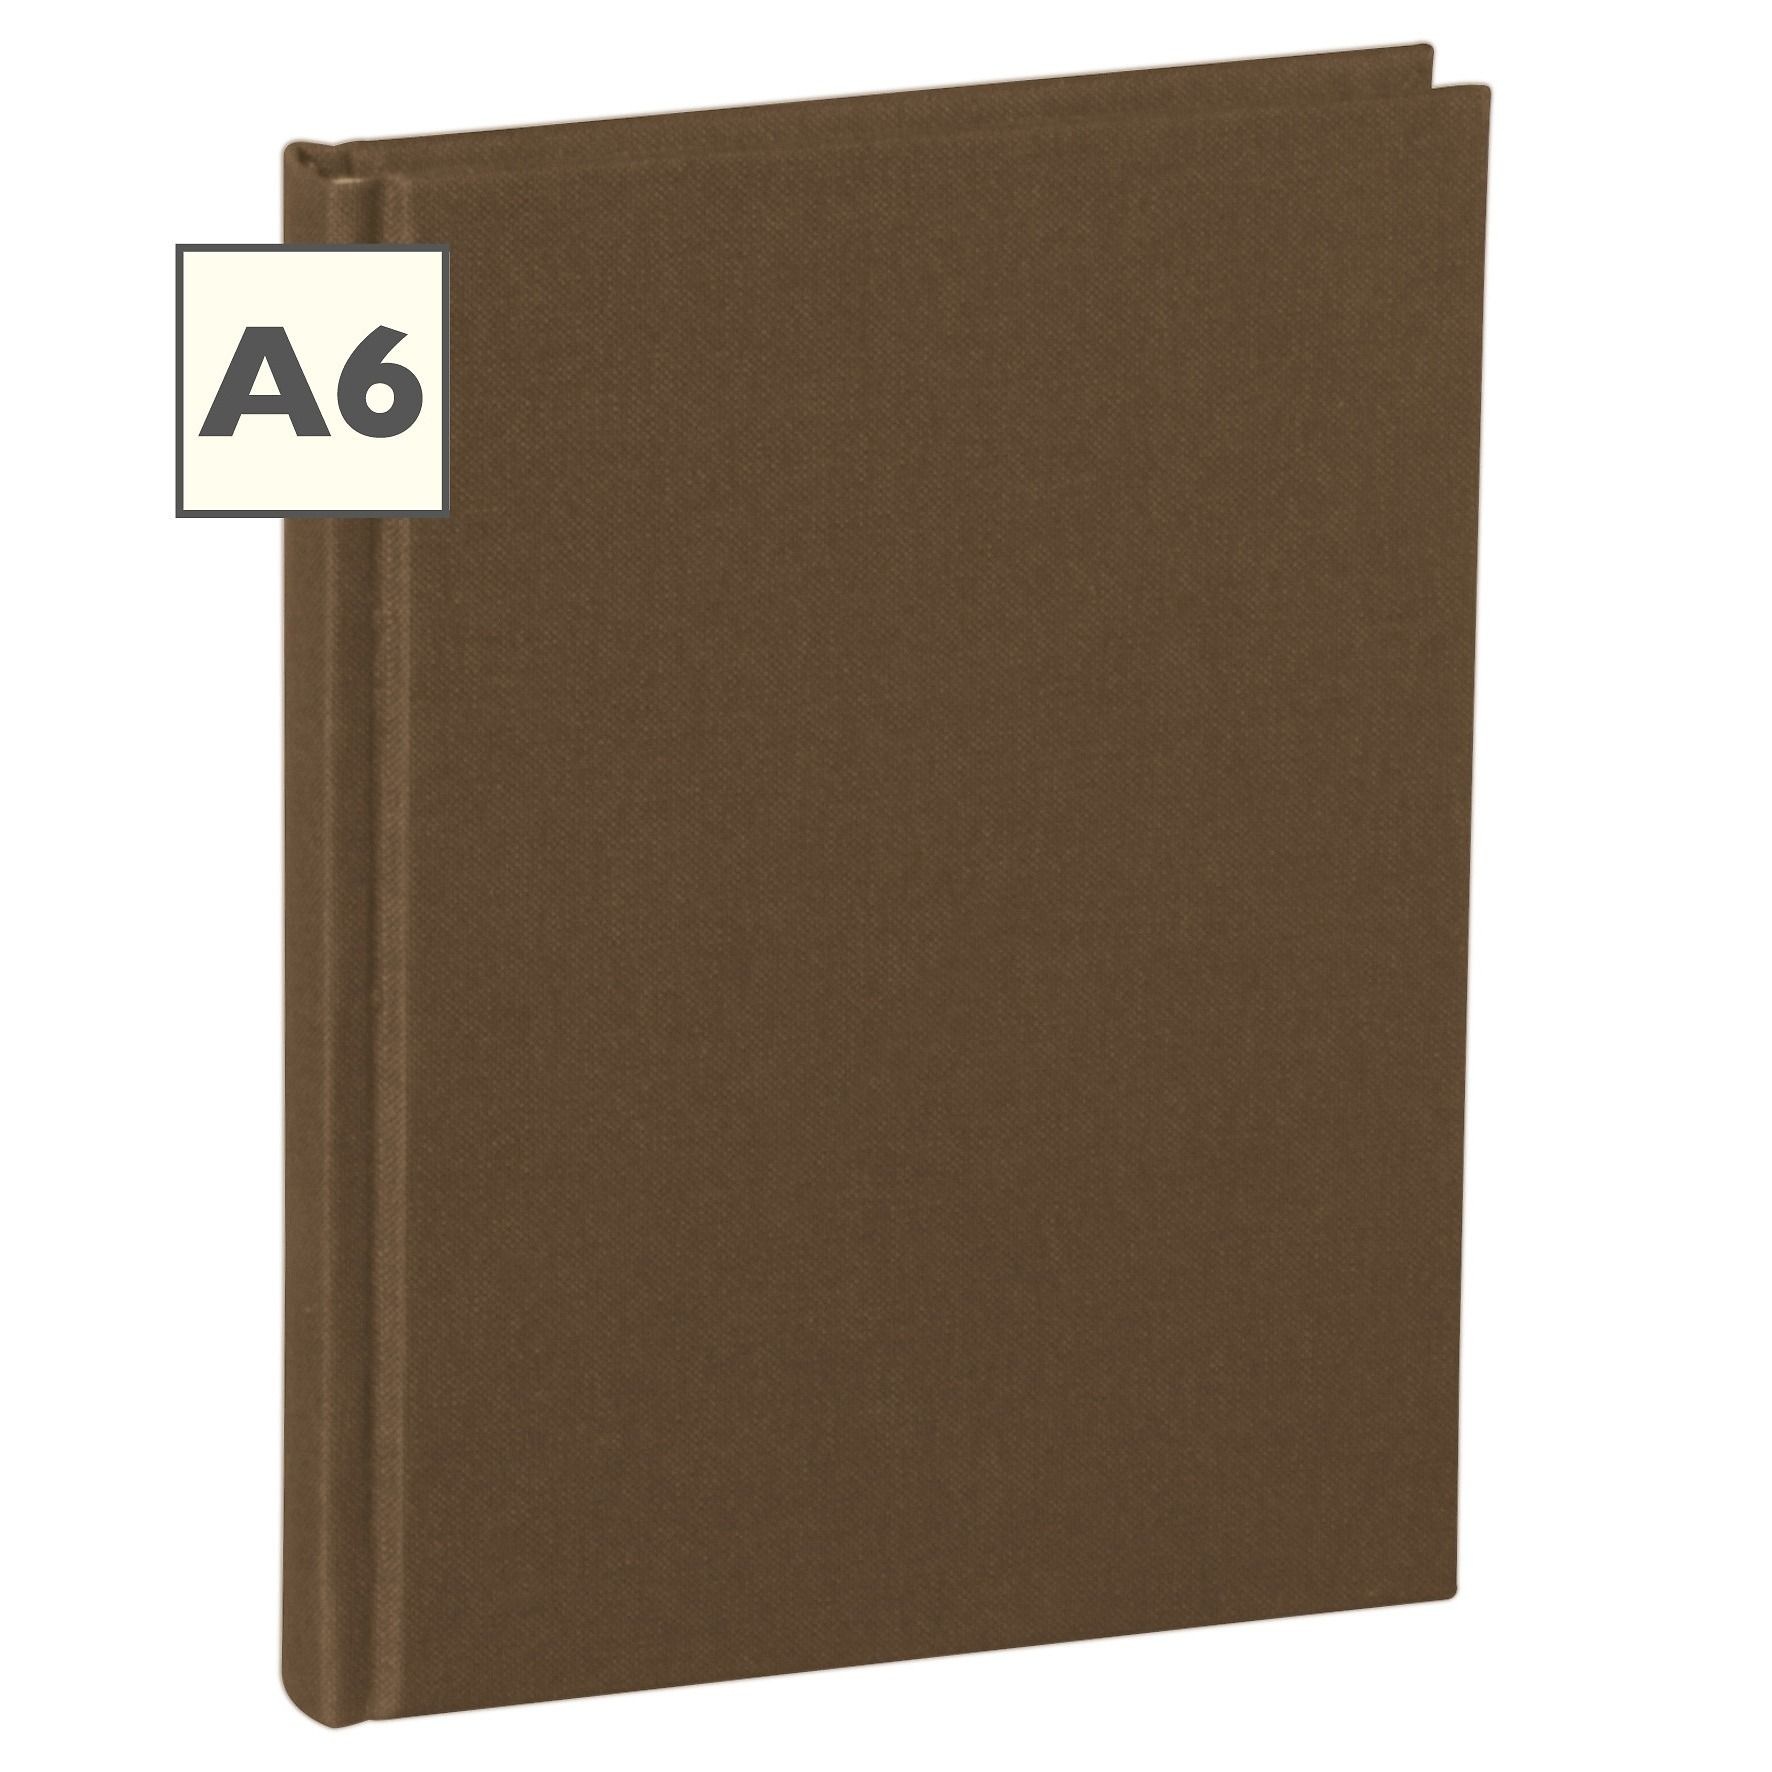 Notebook Classic (A6) Book Linen Cover, 160 Pages, Plain